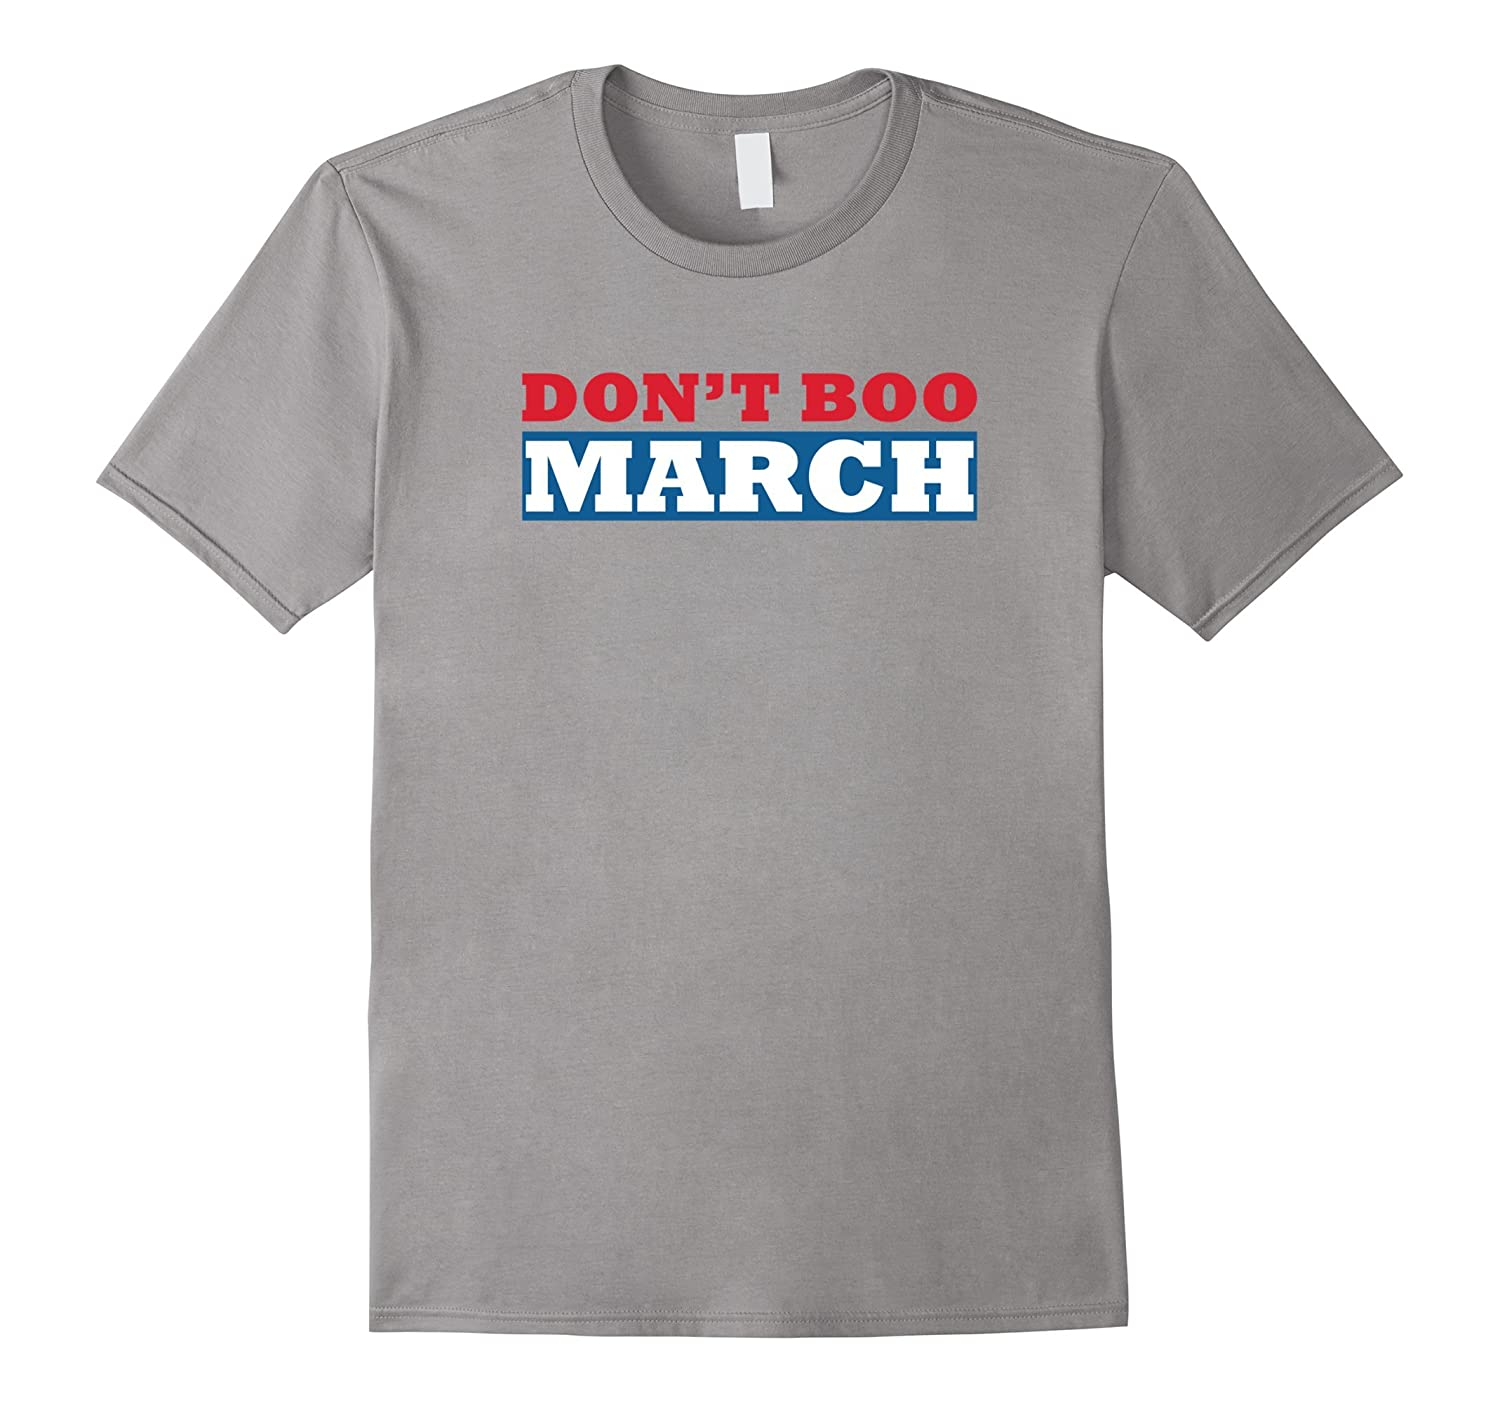 Don't Boo & Support The Women's March On Washington T-Shirt-Art